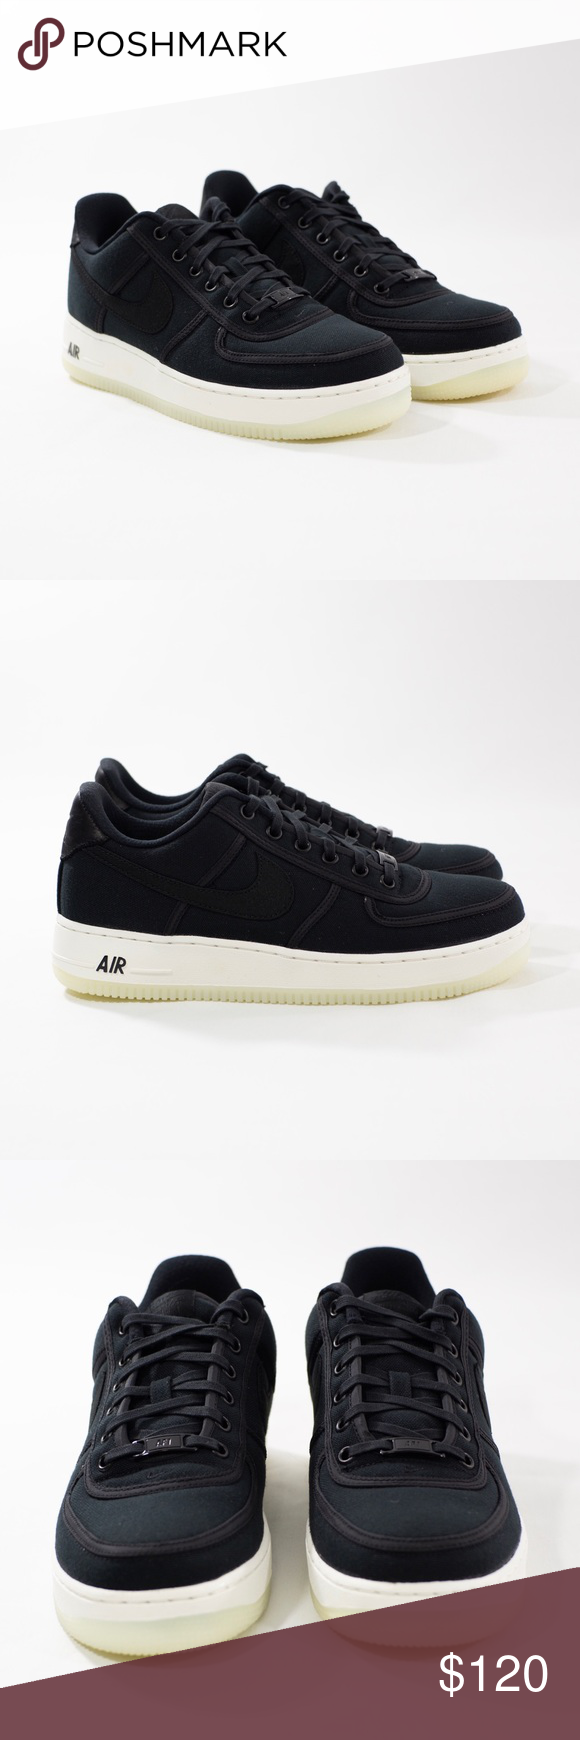 Nike Air Force 1 Low Retro QS Canvas Nike Air Force 1 Low